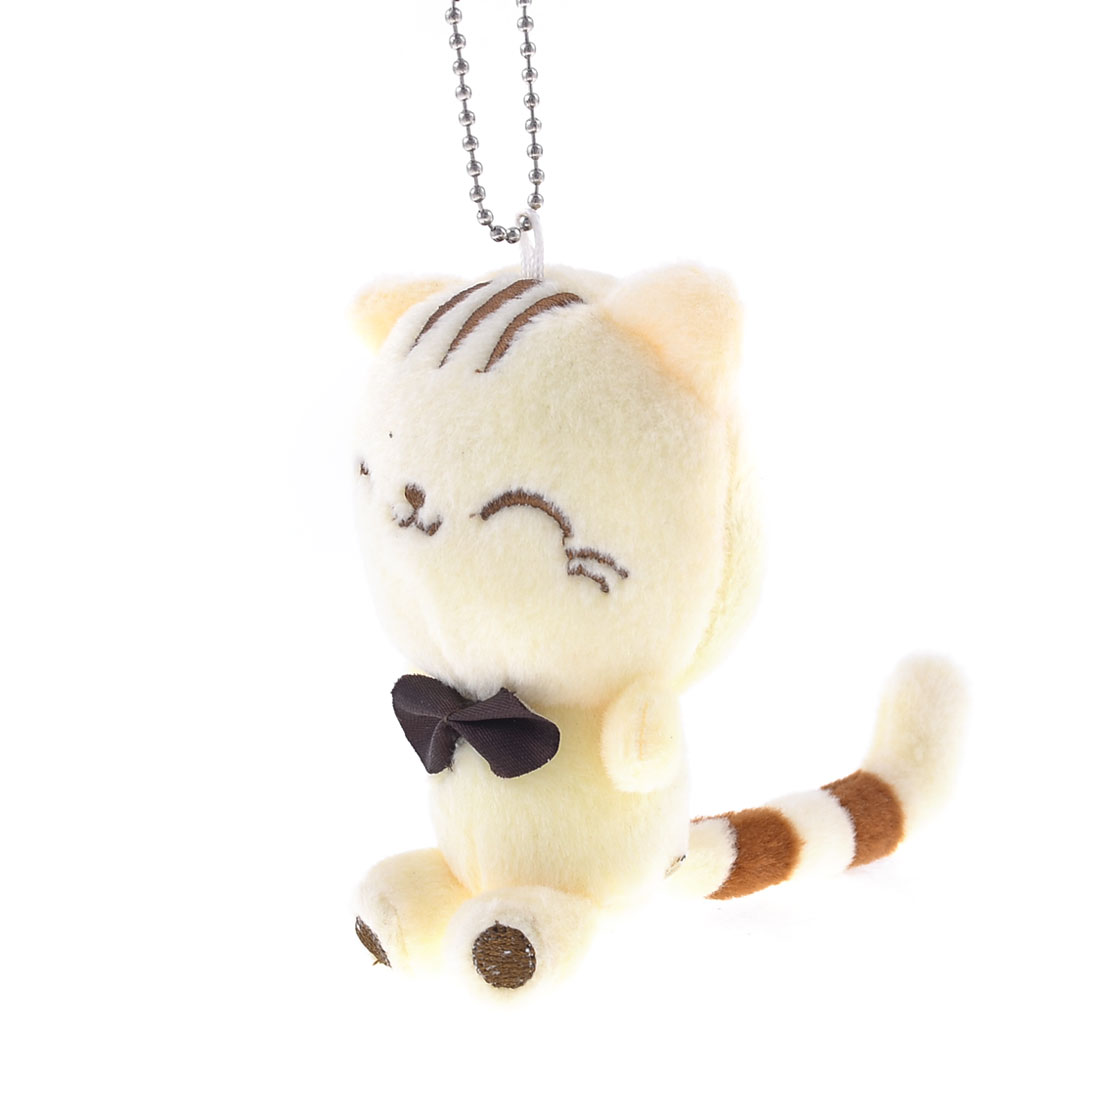 Beige Plush Stuffed Cotton Tiger Suction Cup Toy Pendant for Car